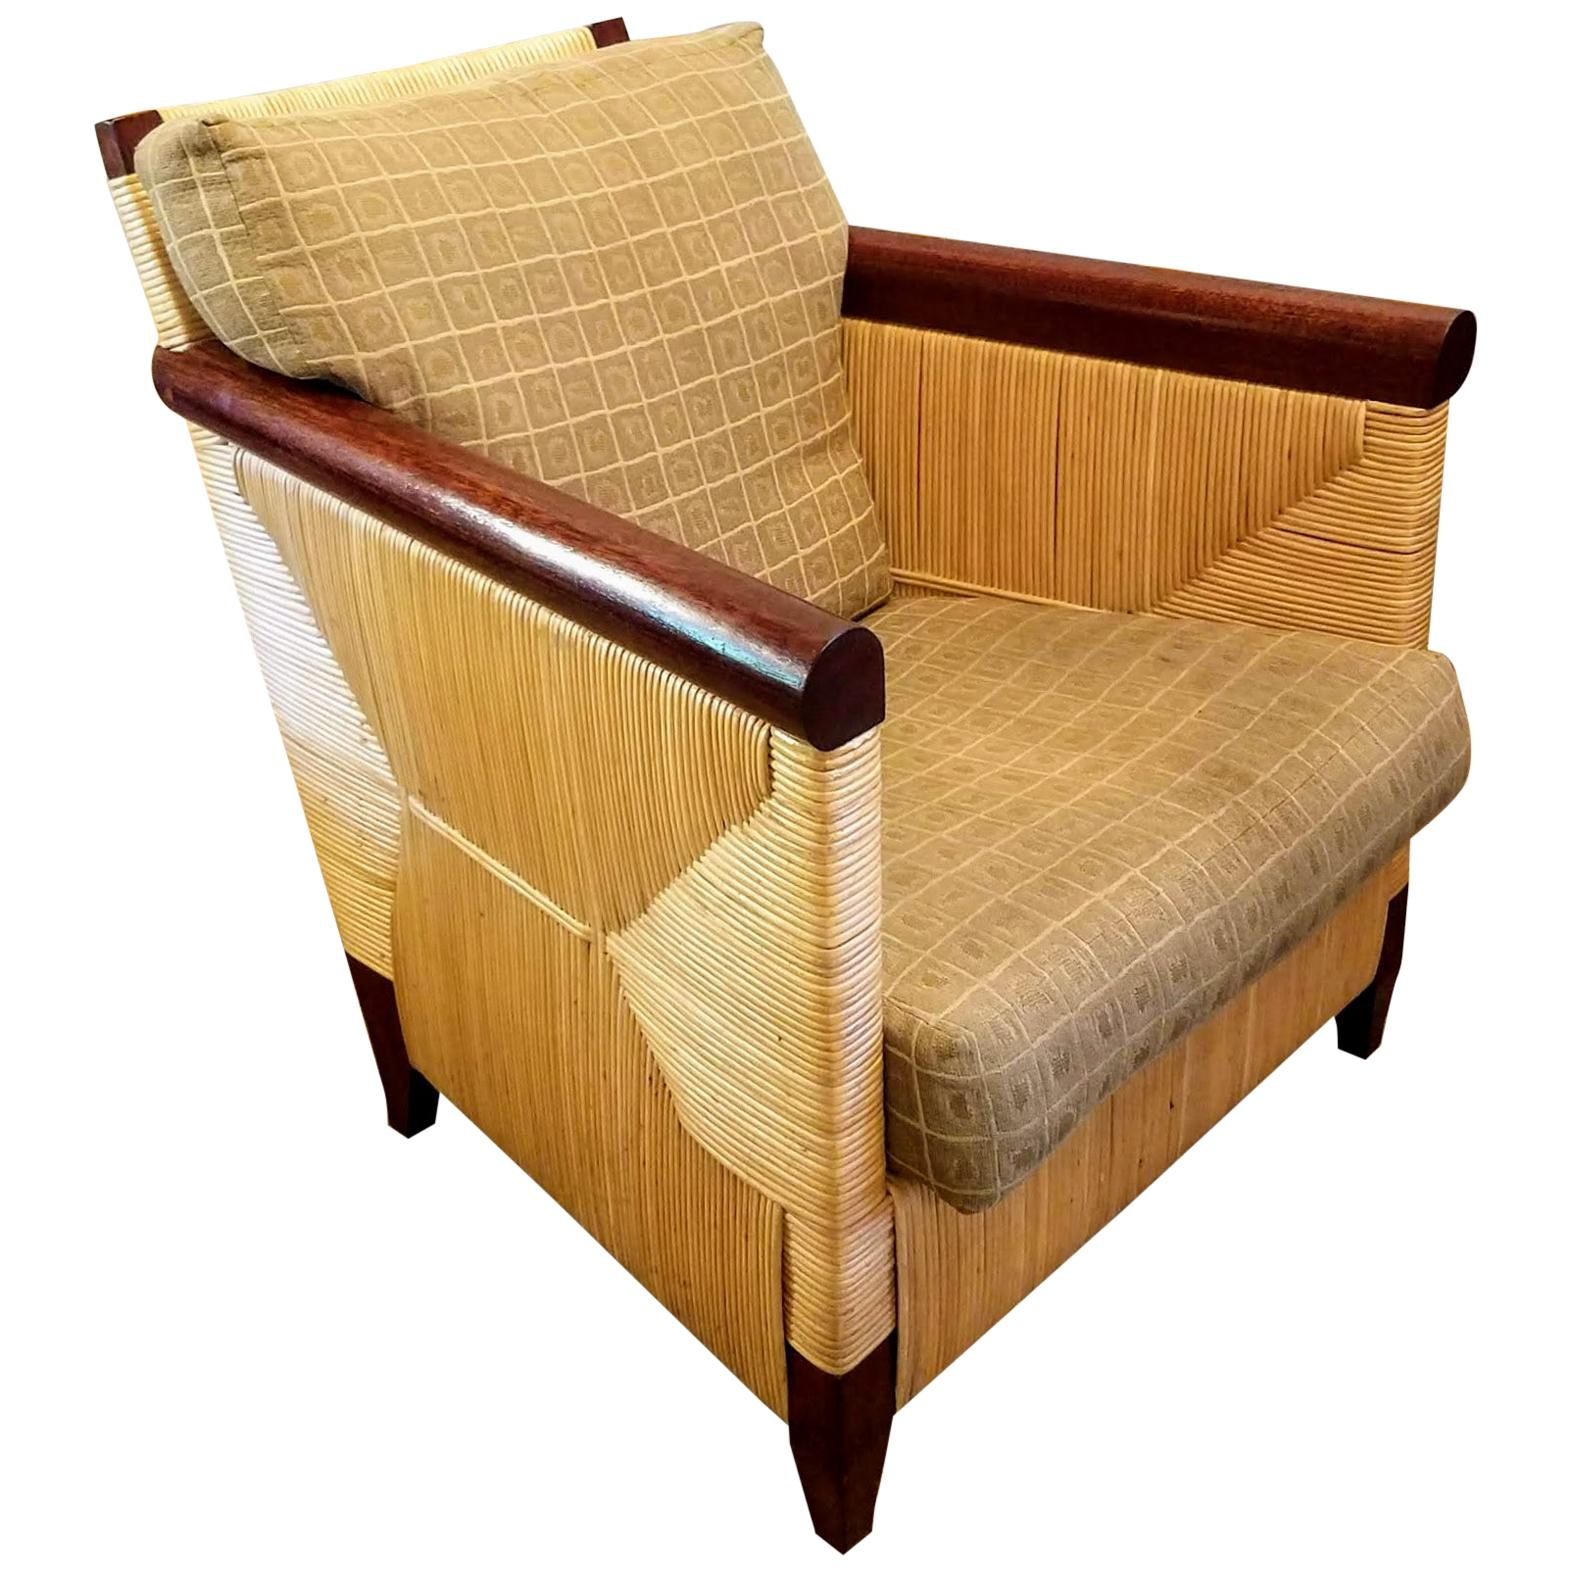 Lounge Chair Donghia by John Hutton 1995 Mahogany and Cane